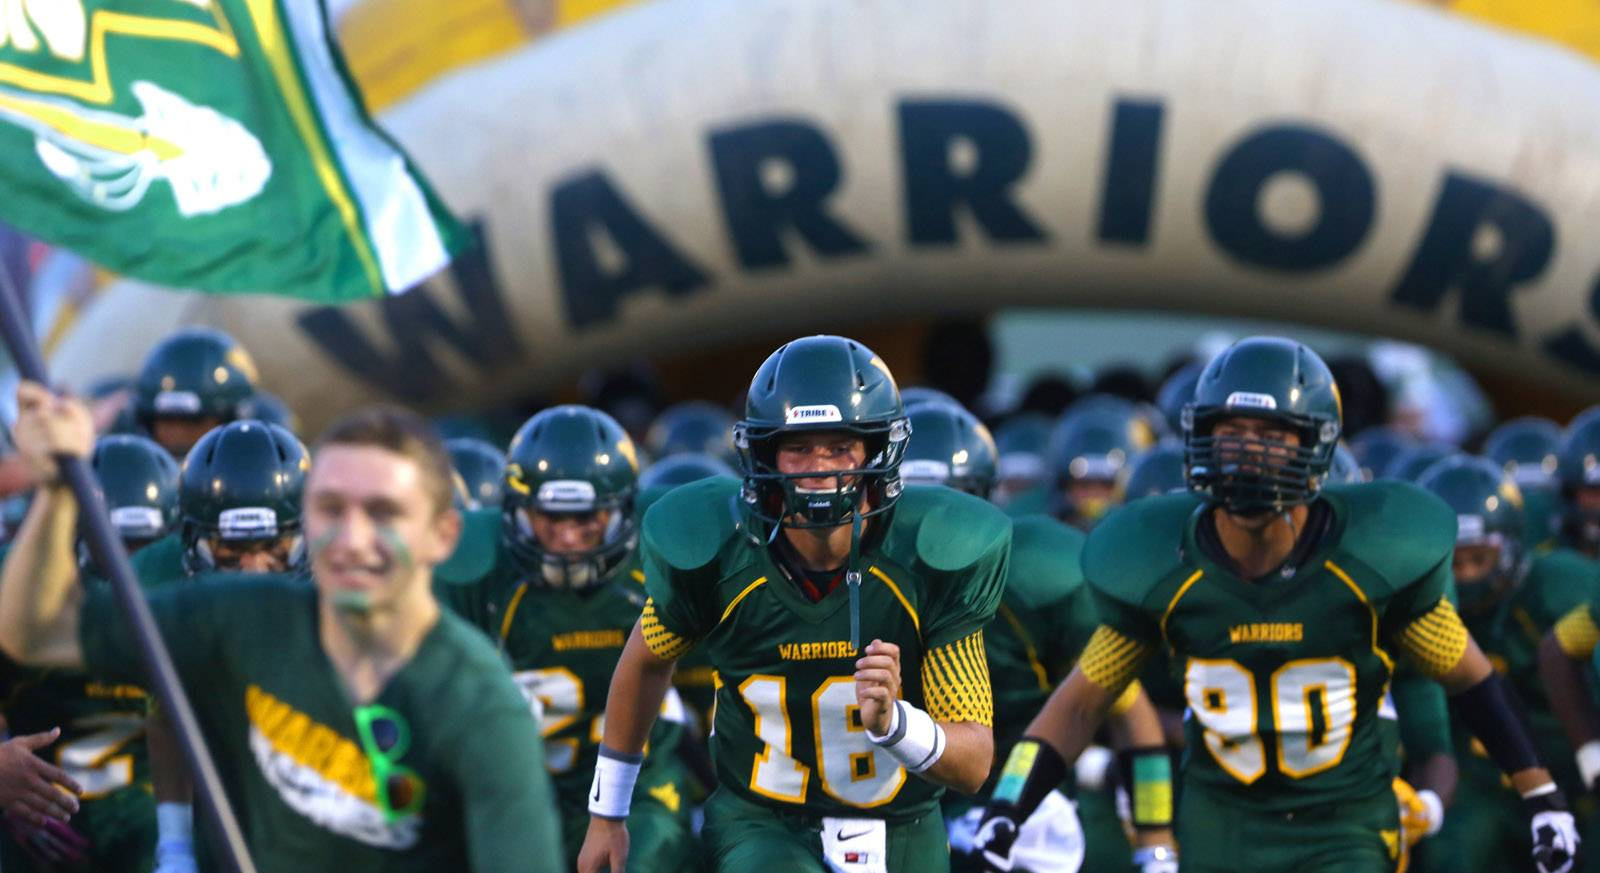 Waubonsie Valley's Zach Bennema and Kurtis Chione lead the Warriors into Friday night football action.